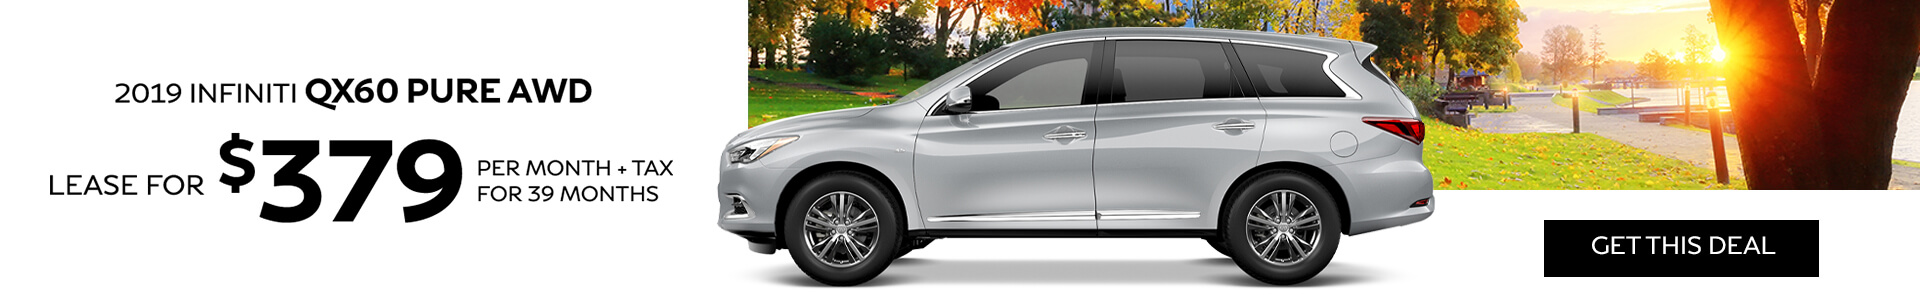 QX60 PURE - Lease for $379